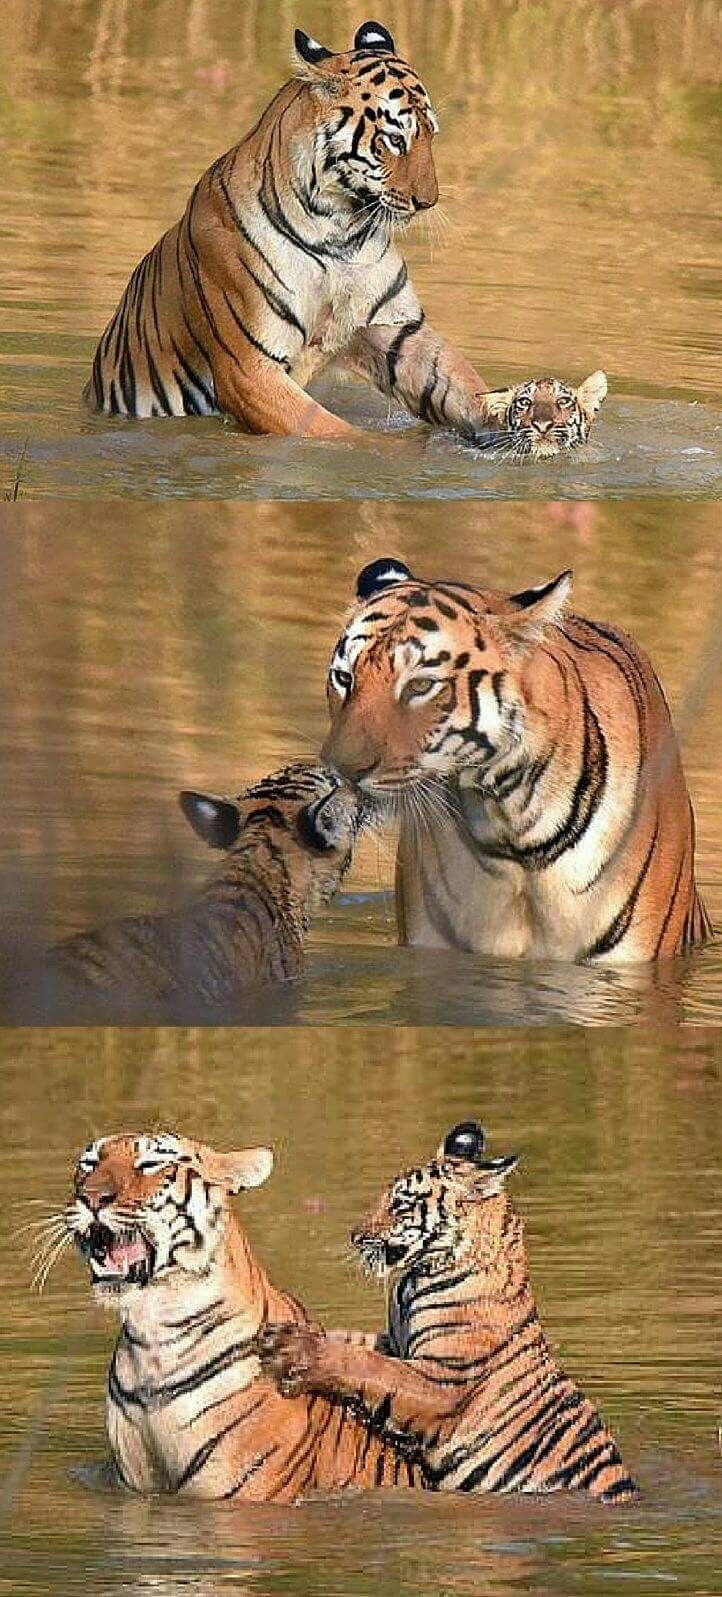 Awwwe tiger cub swimming lessons. This is fab !